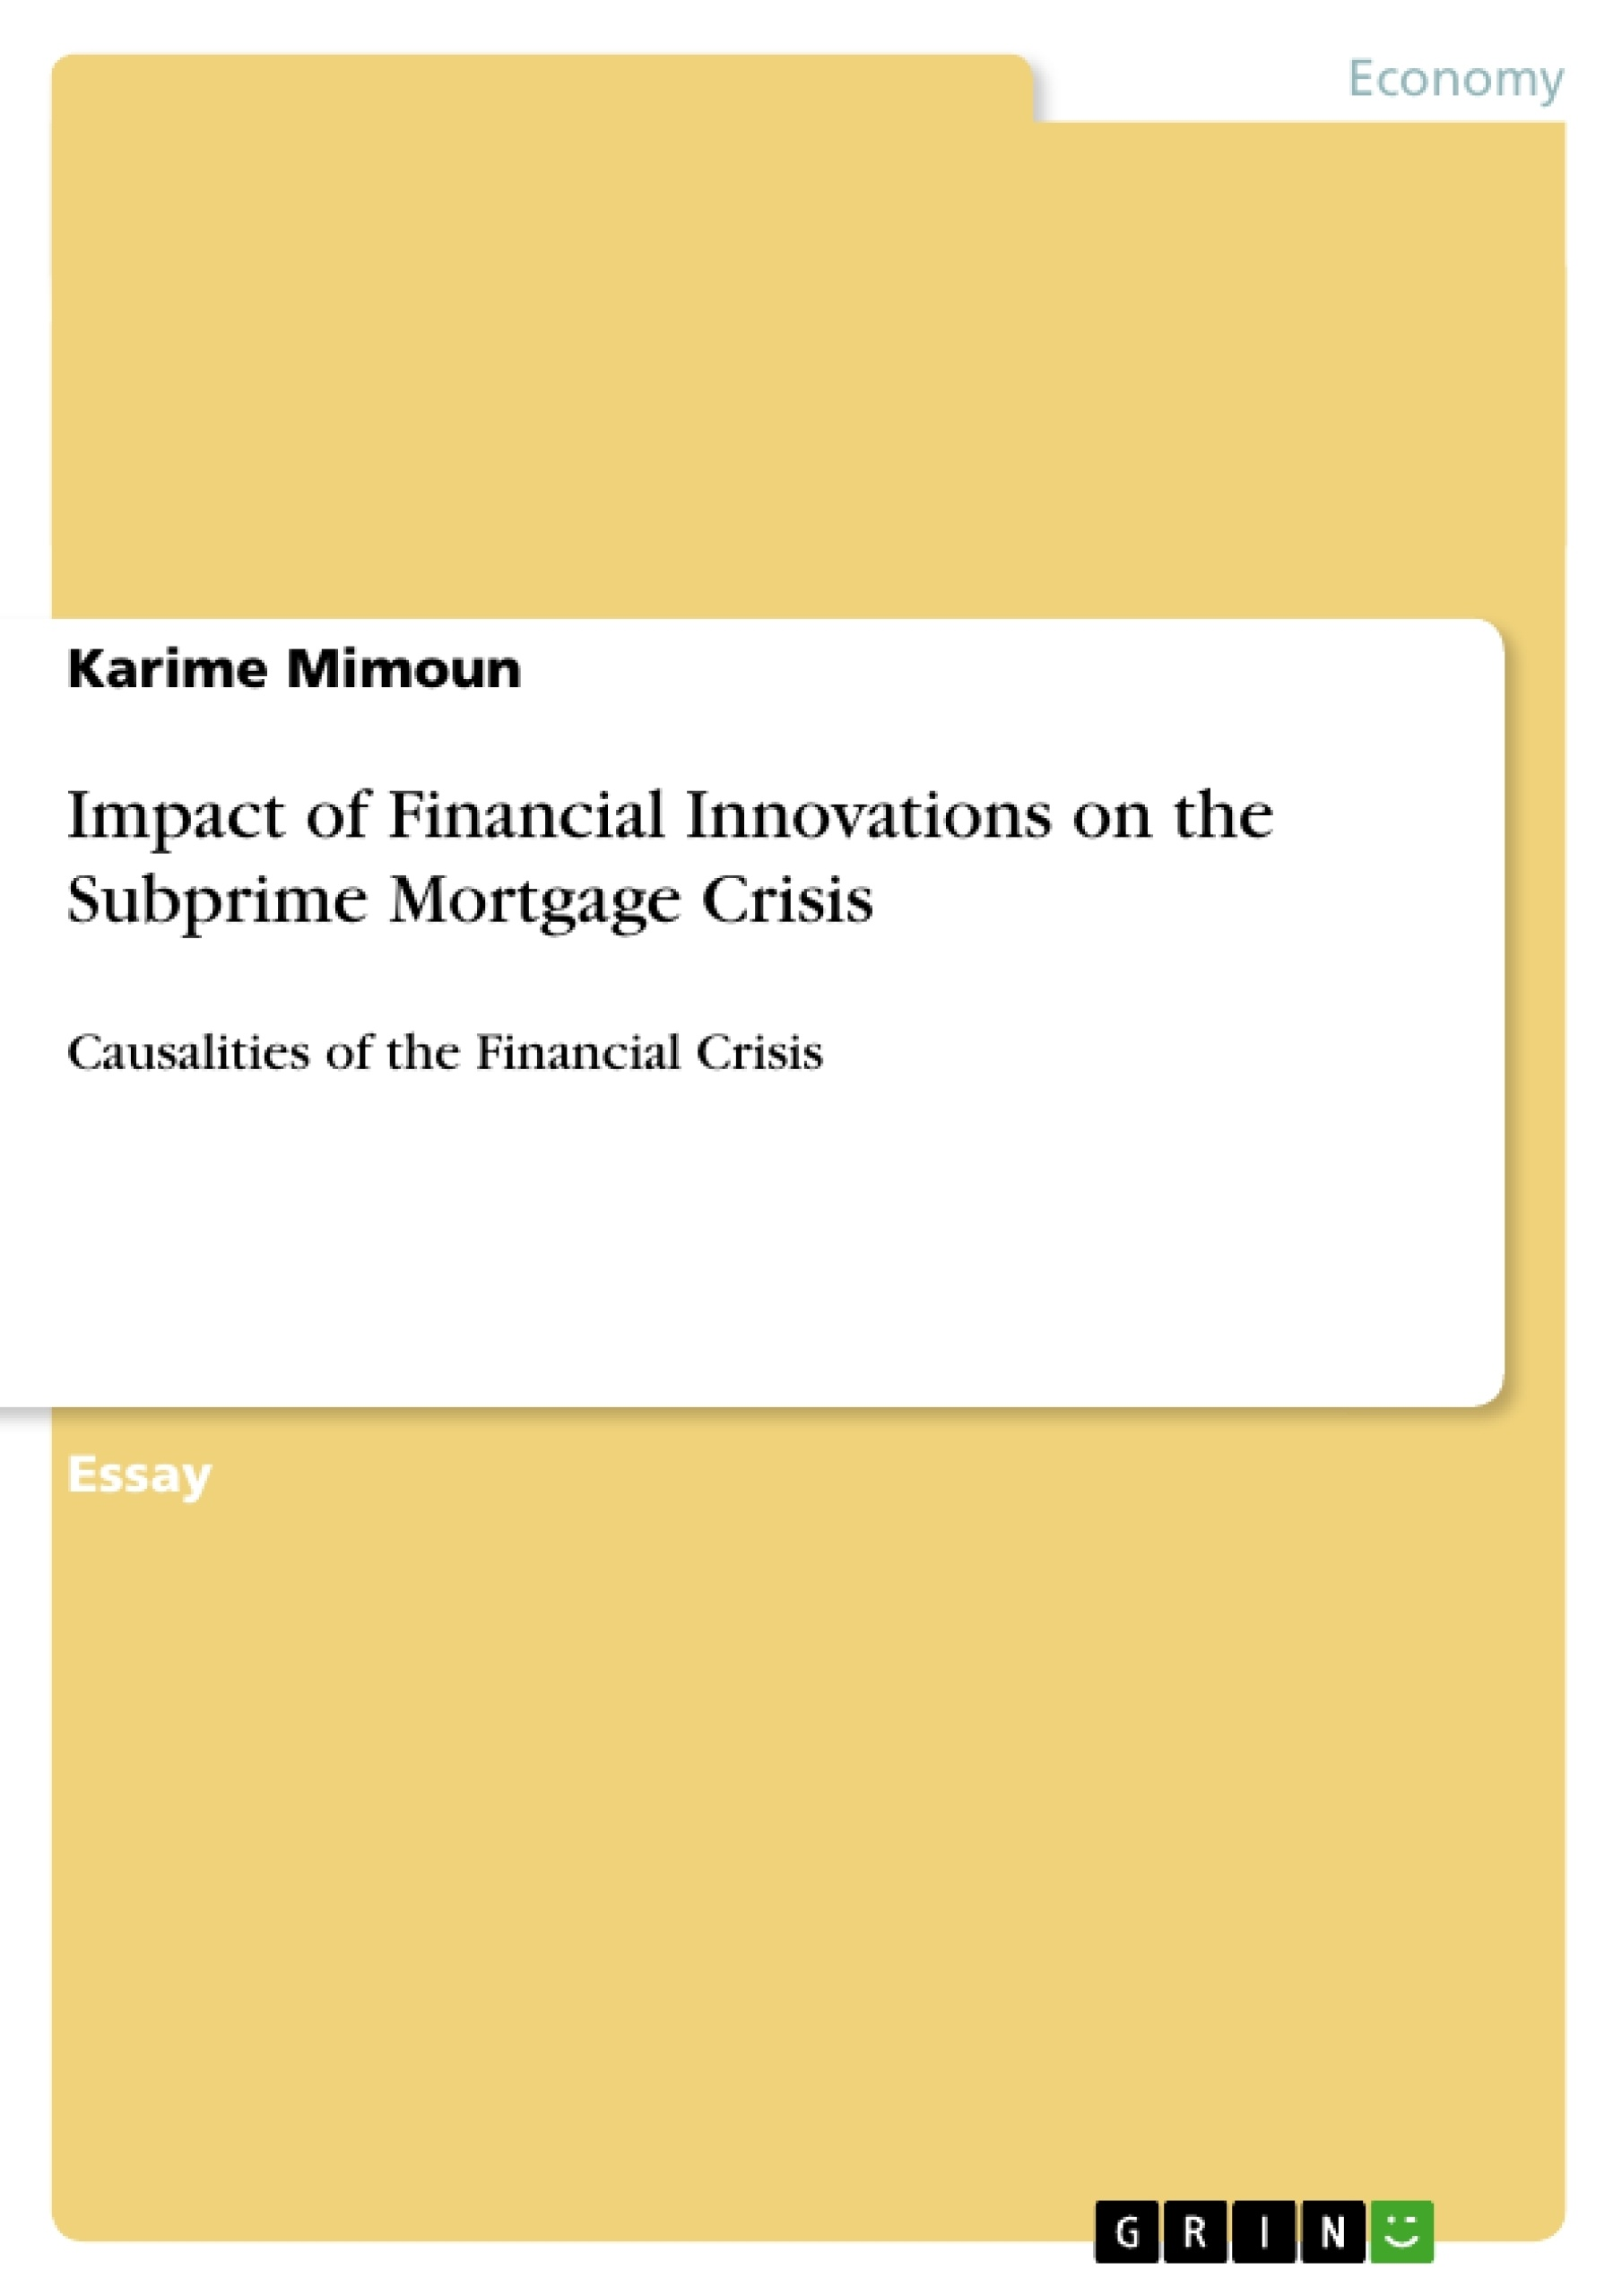 impact of financial innovations on the subprime mortgage crisis upload your own papers earn money and win an iphone 7